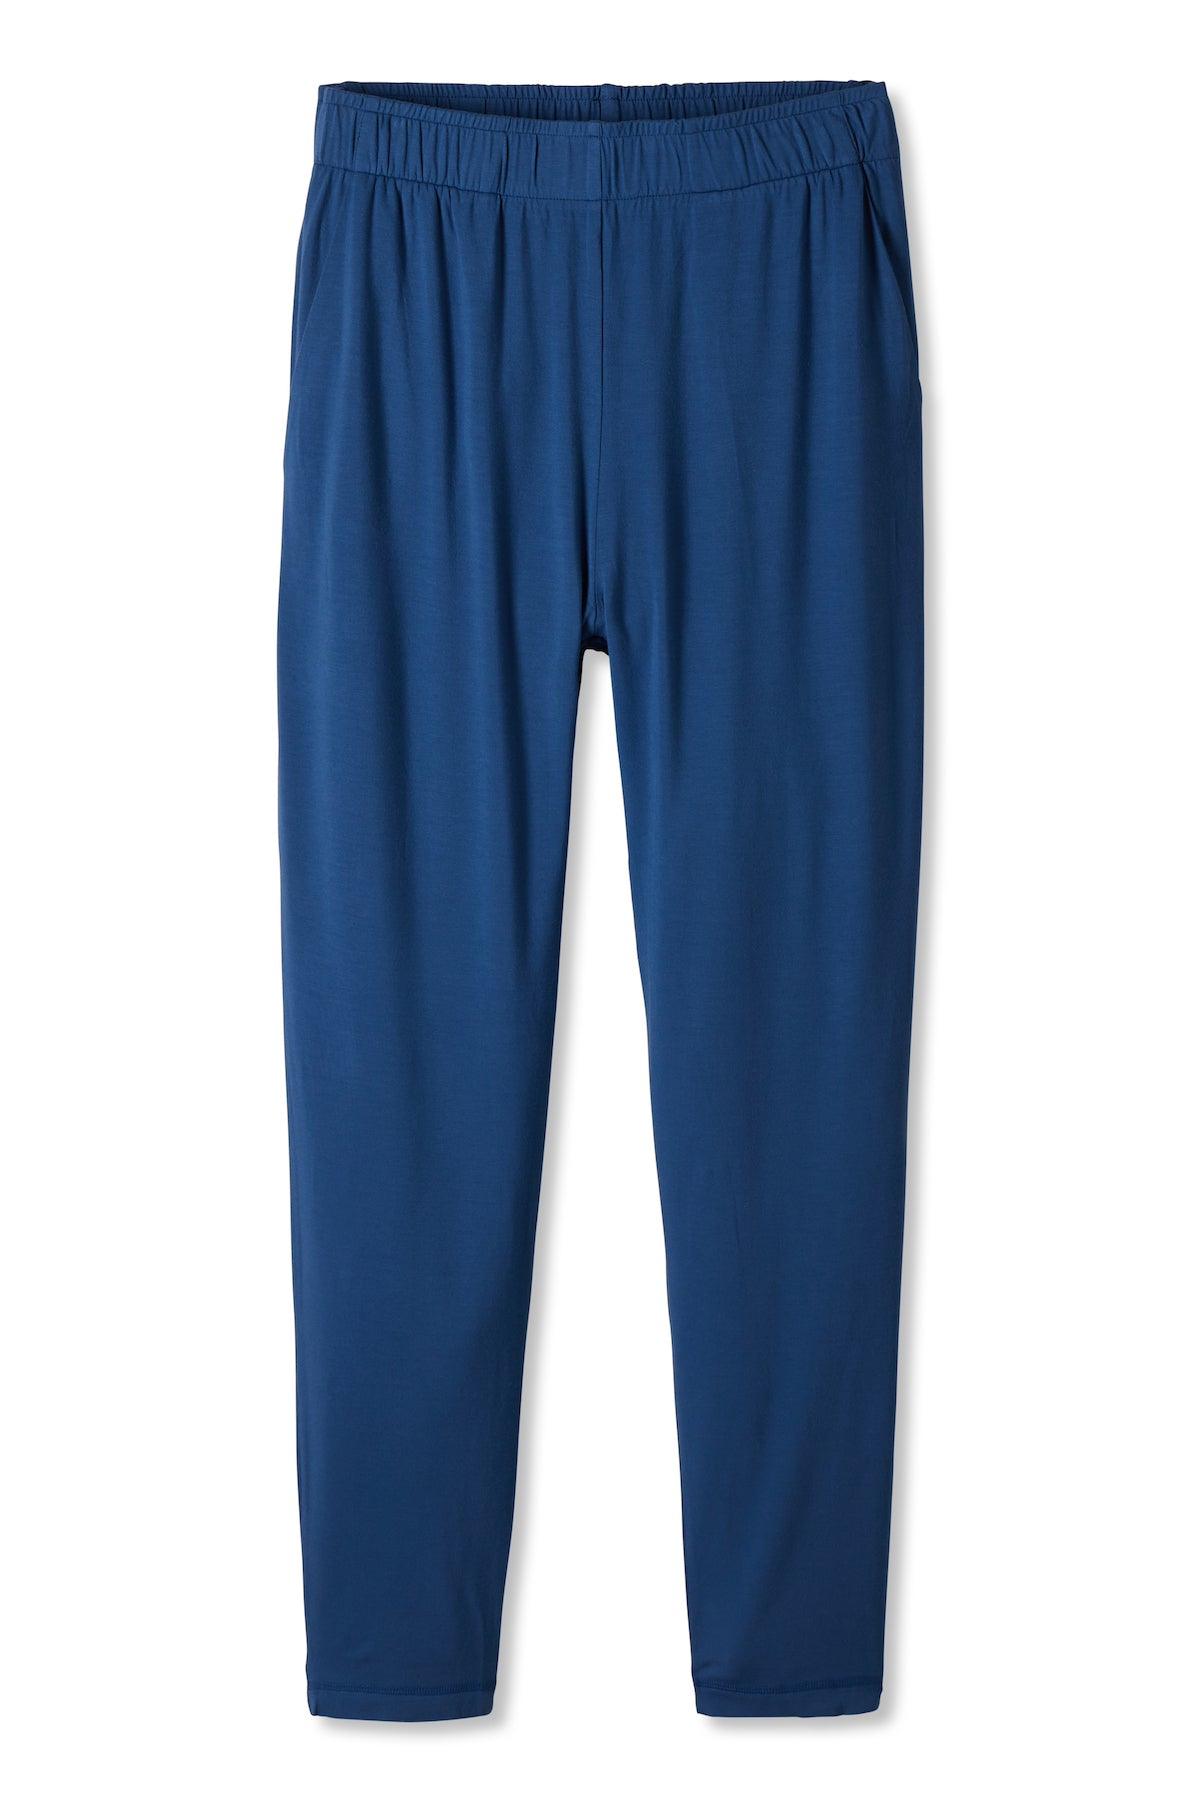 Men's Bamboo Lounge Pants in River